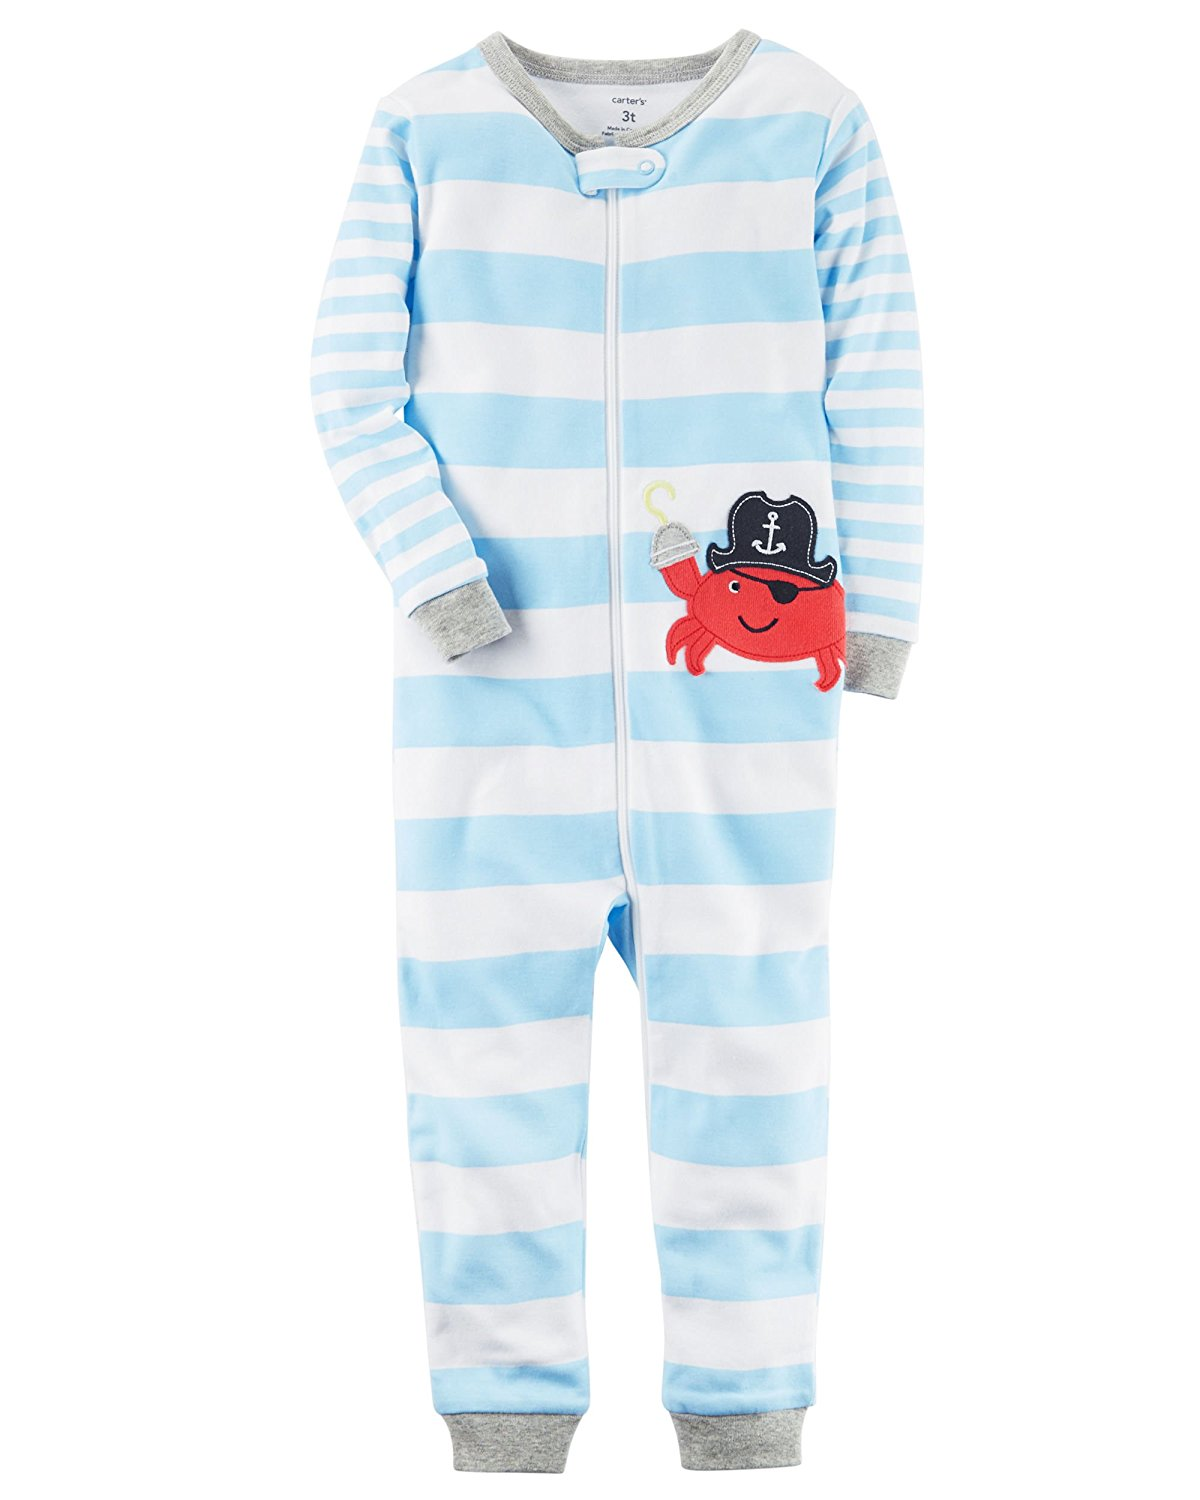 7ebcede01915 Cheap Footless Pajamas For Babies